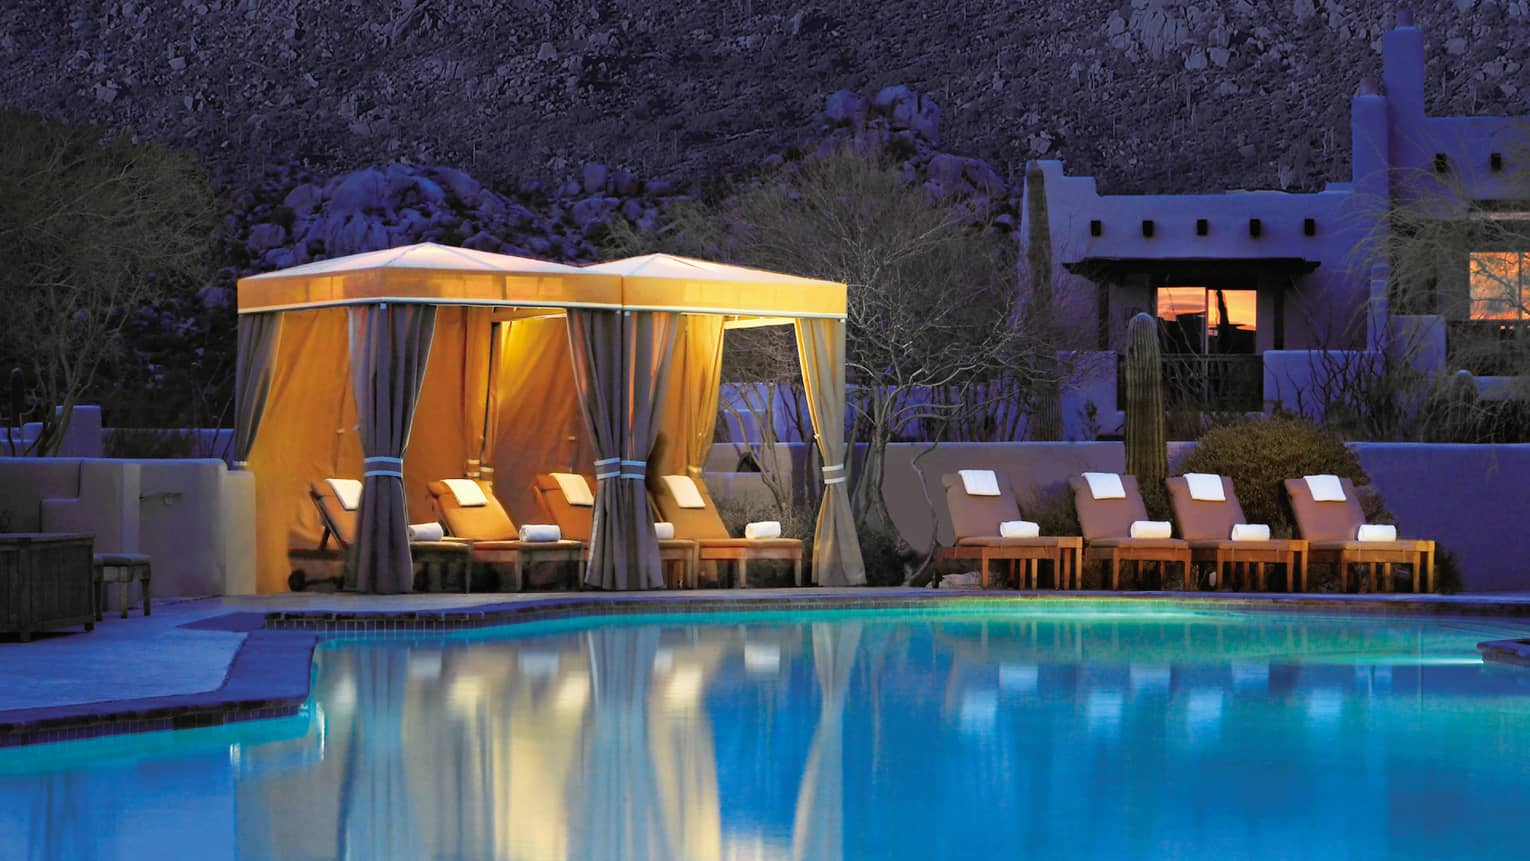 Lounge chairs with rolled white towels under illuminated poolside cabanas at night